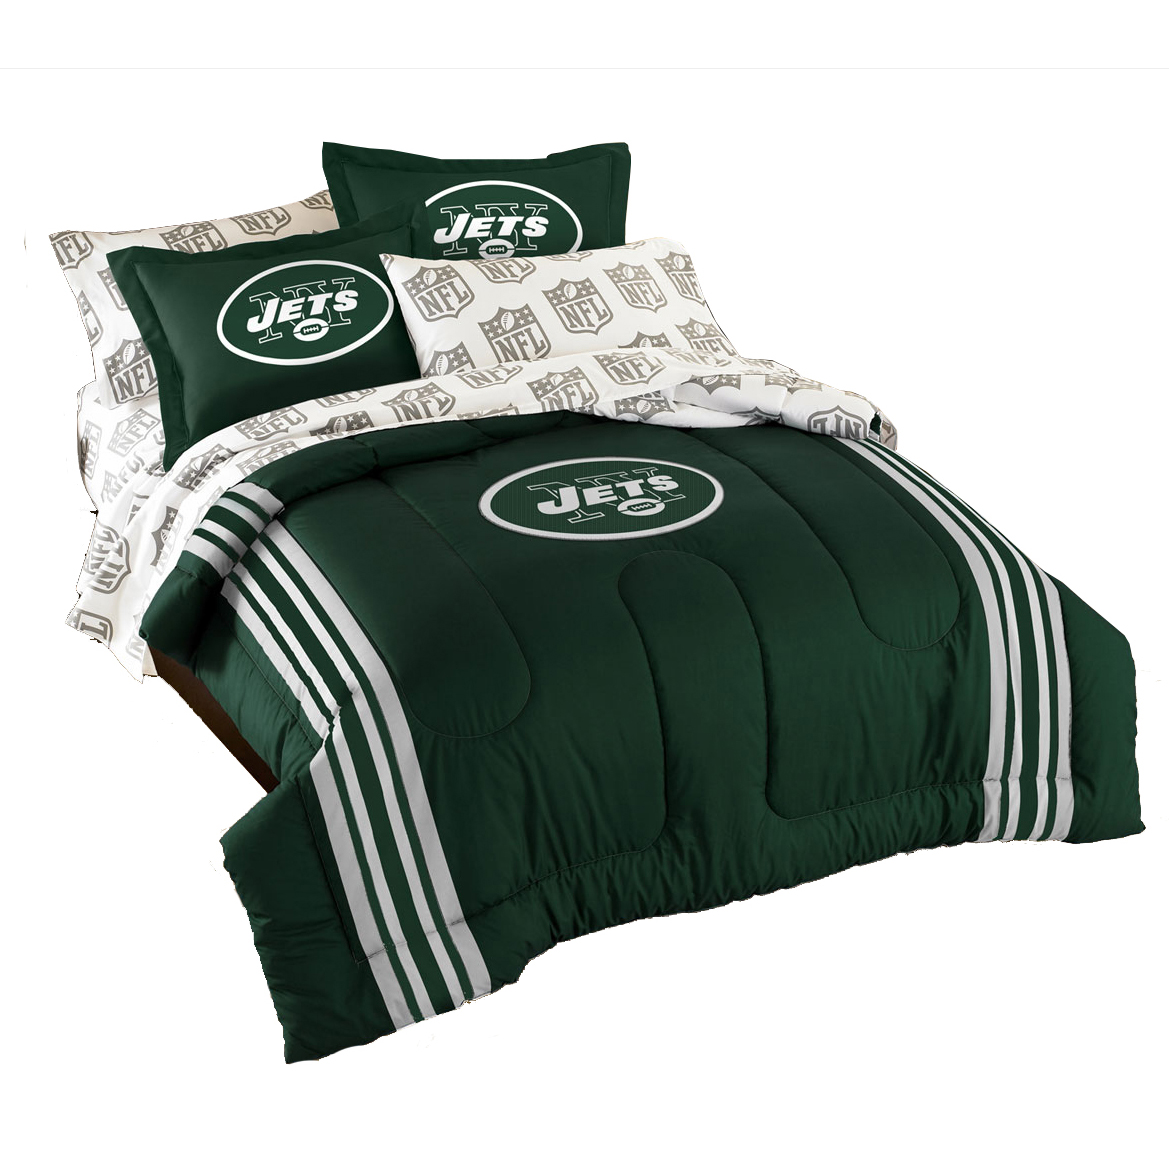 5pc New York Jets Bedding Set